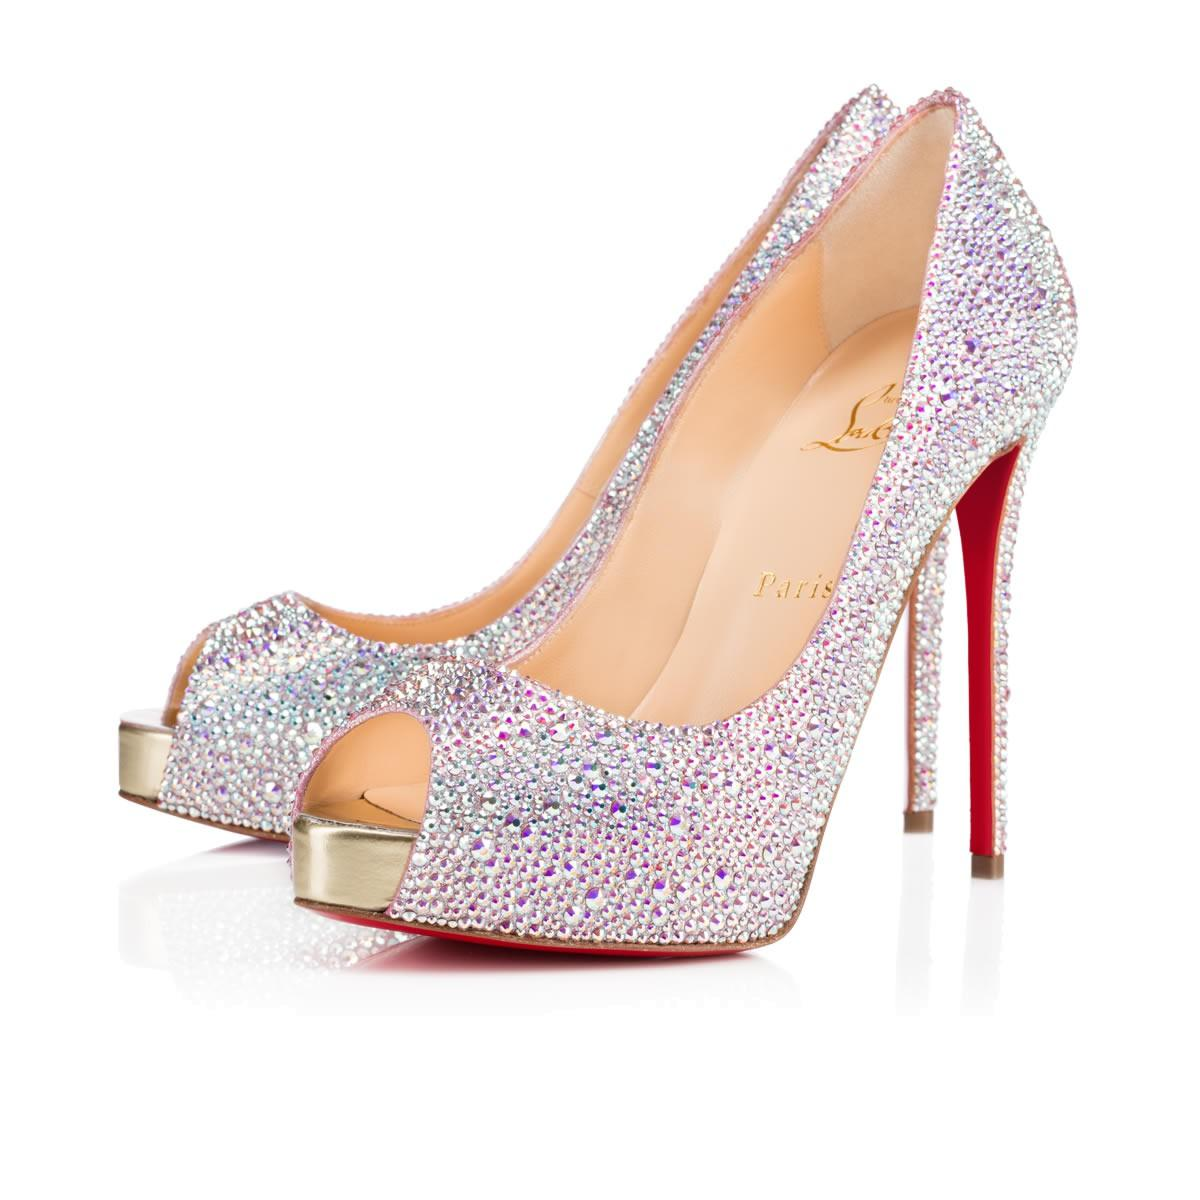 0ae37ed0d42 Lyst - Christian Louboutin New Very Riche Strass in Metallic